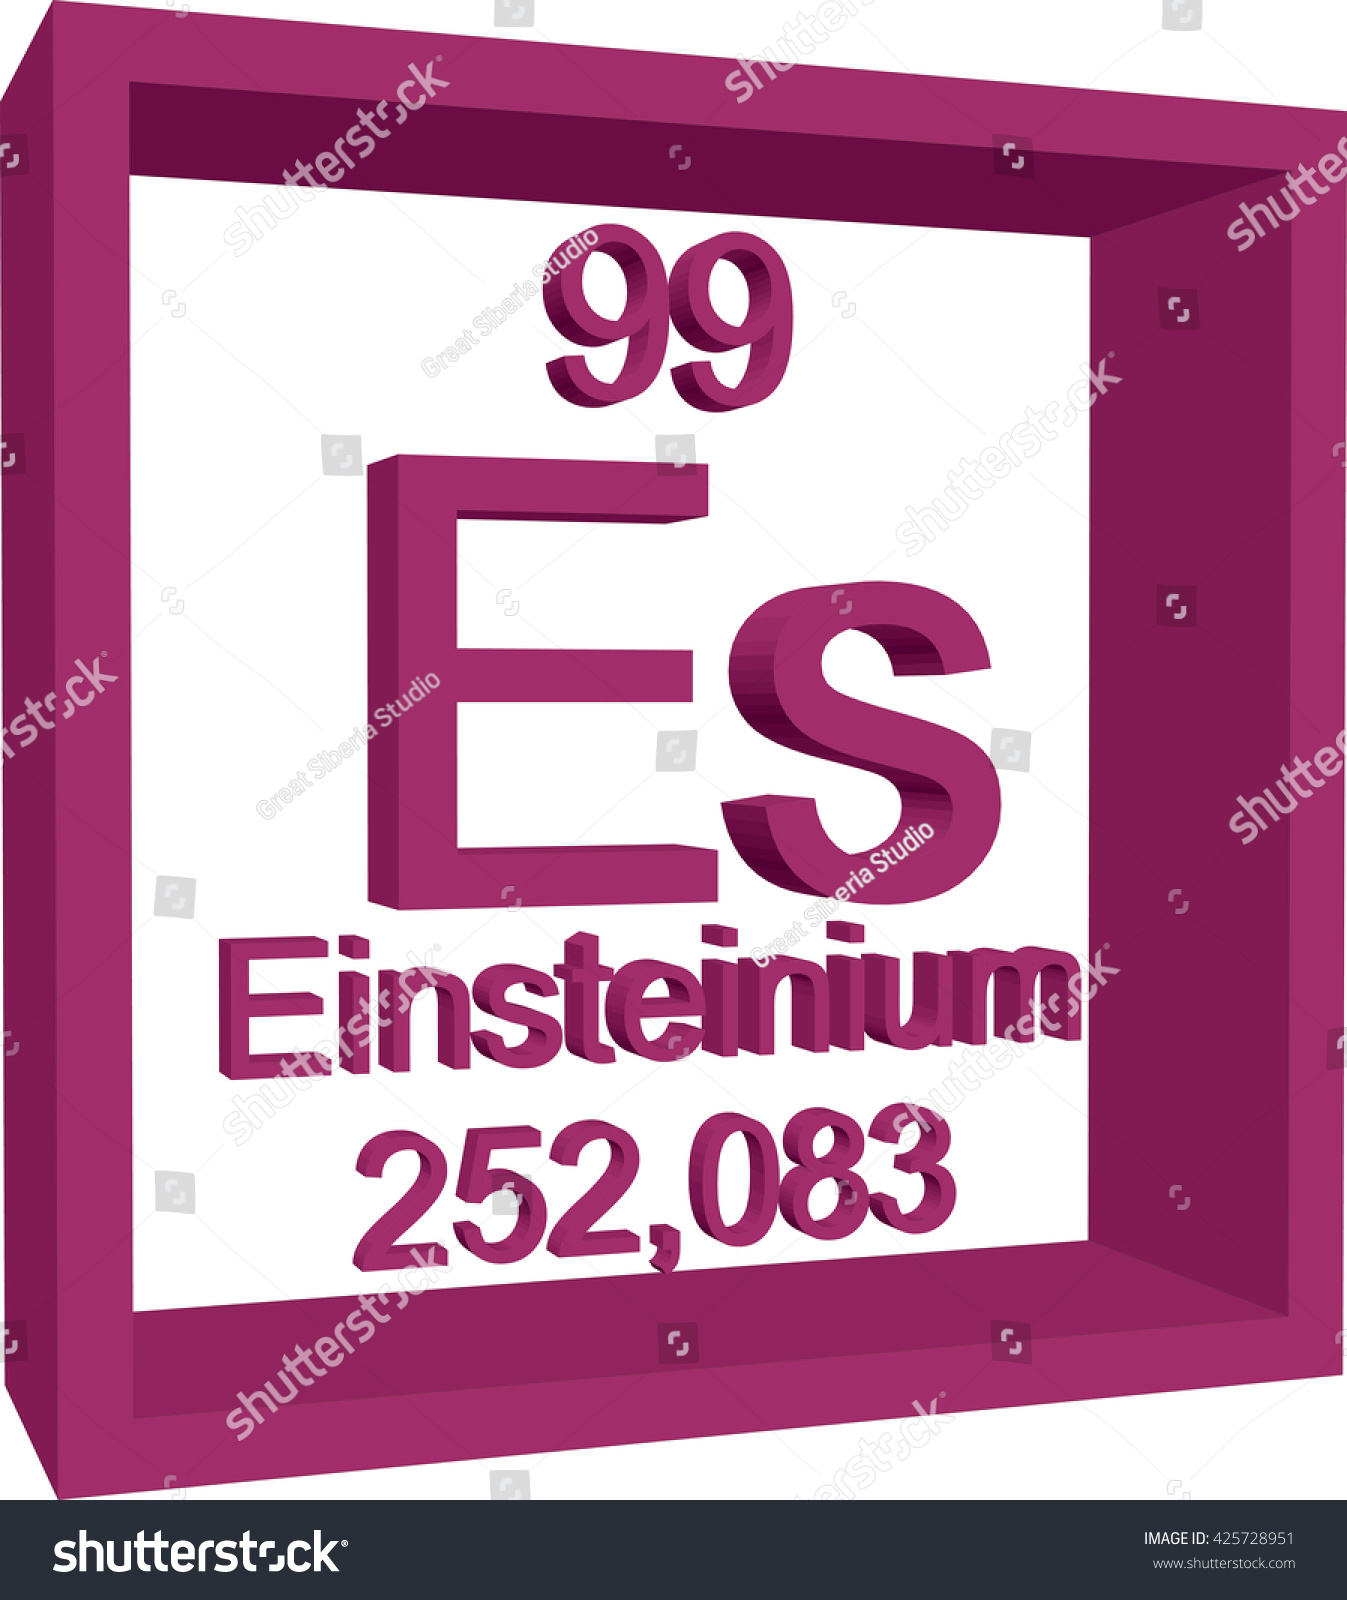 Periodic table cl gallery periodic table images einsteinium on the periodic table aviongoldcorp periodic table elements einsteinium stock vector 425728951 gamestrikefo gallery gamestrikefo Gallery